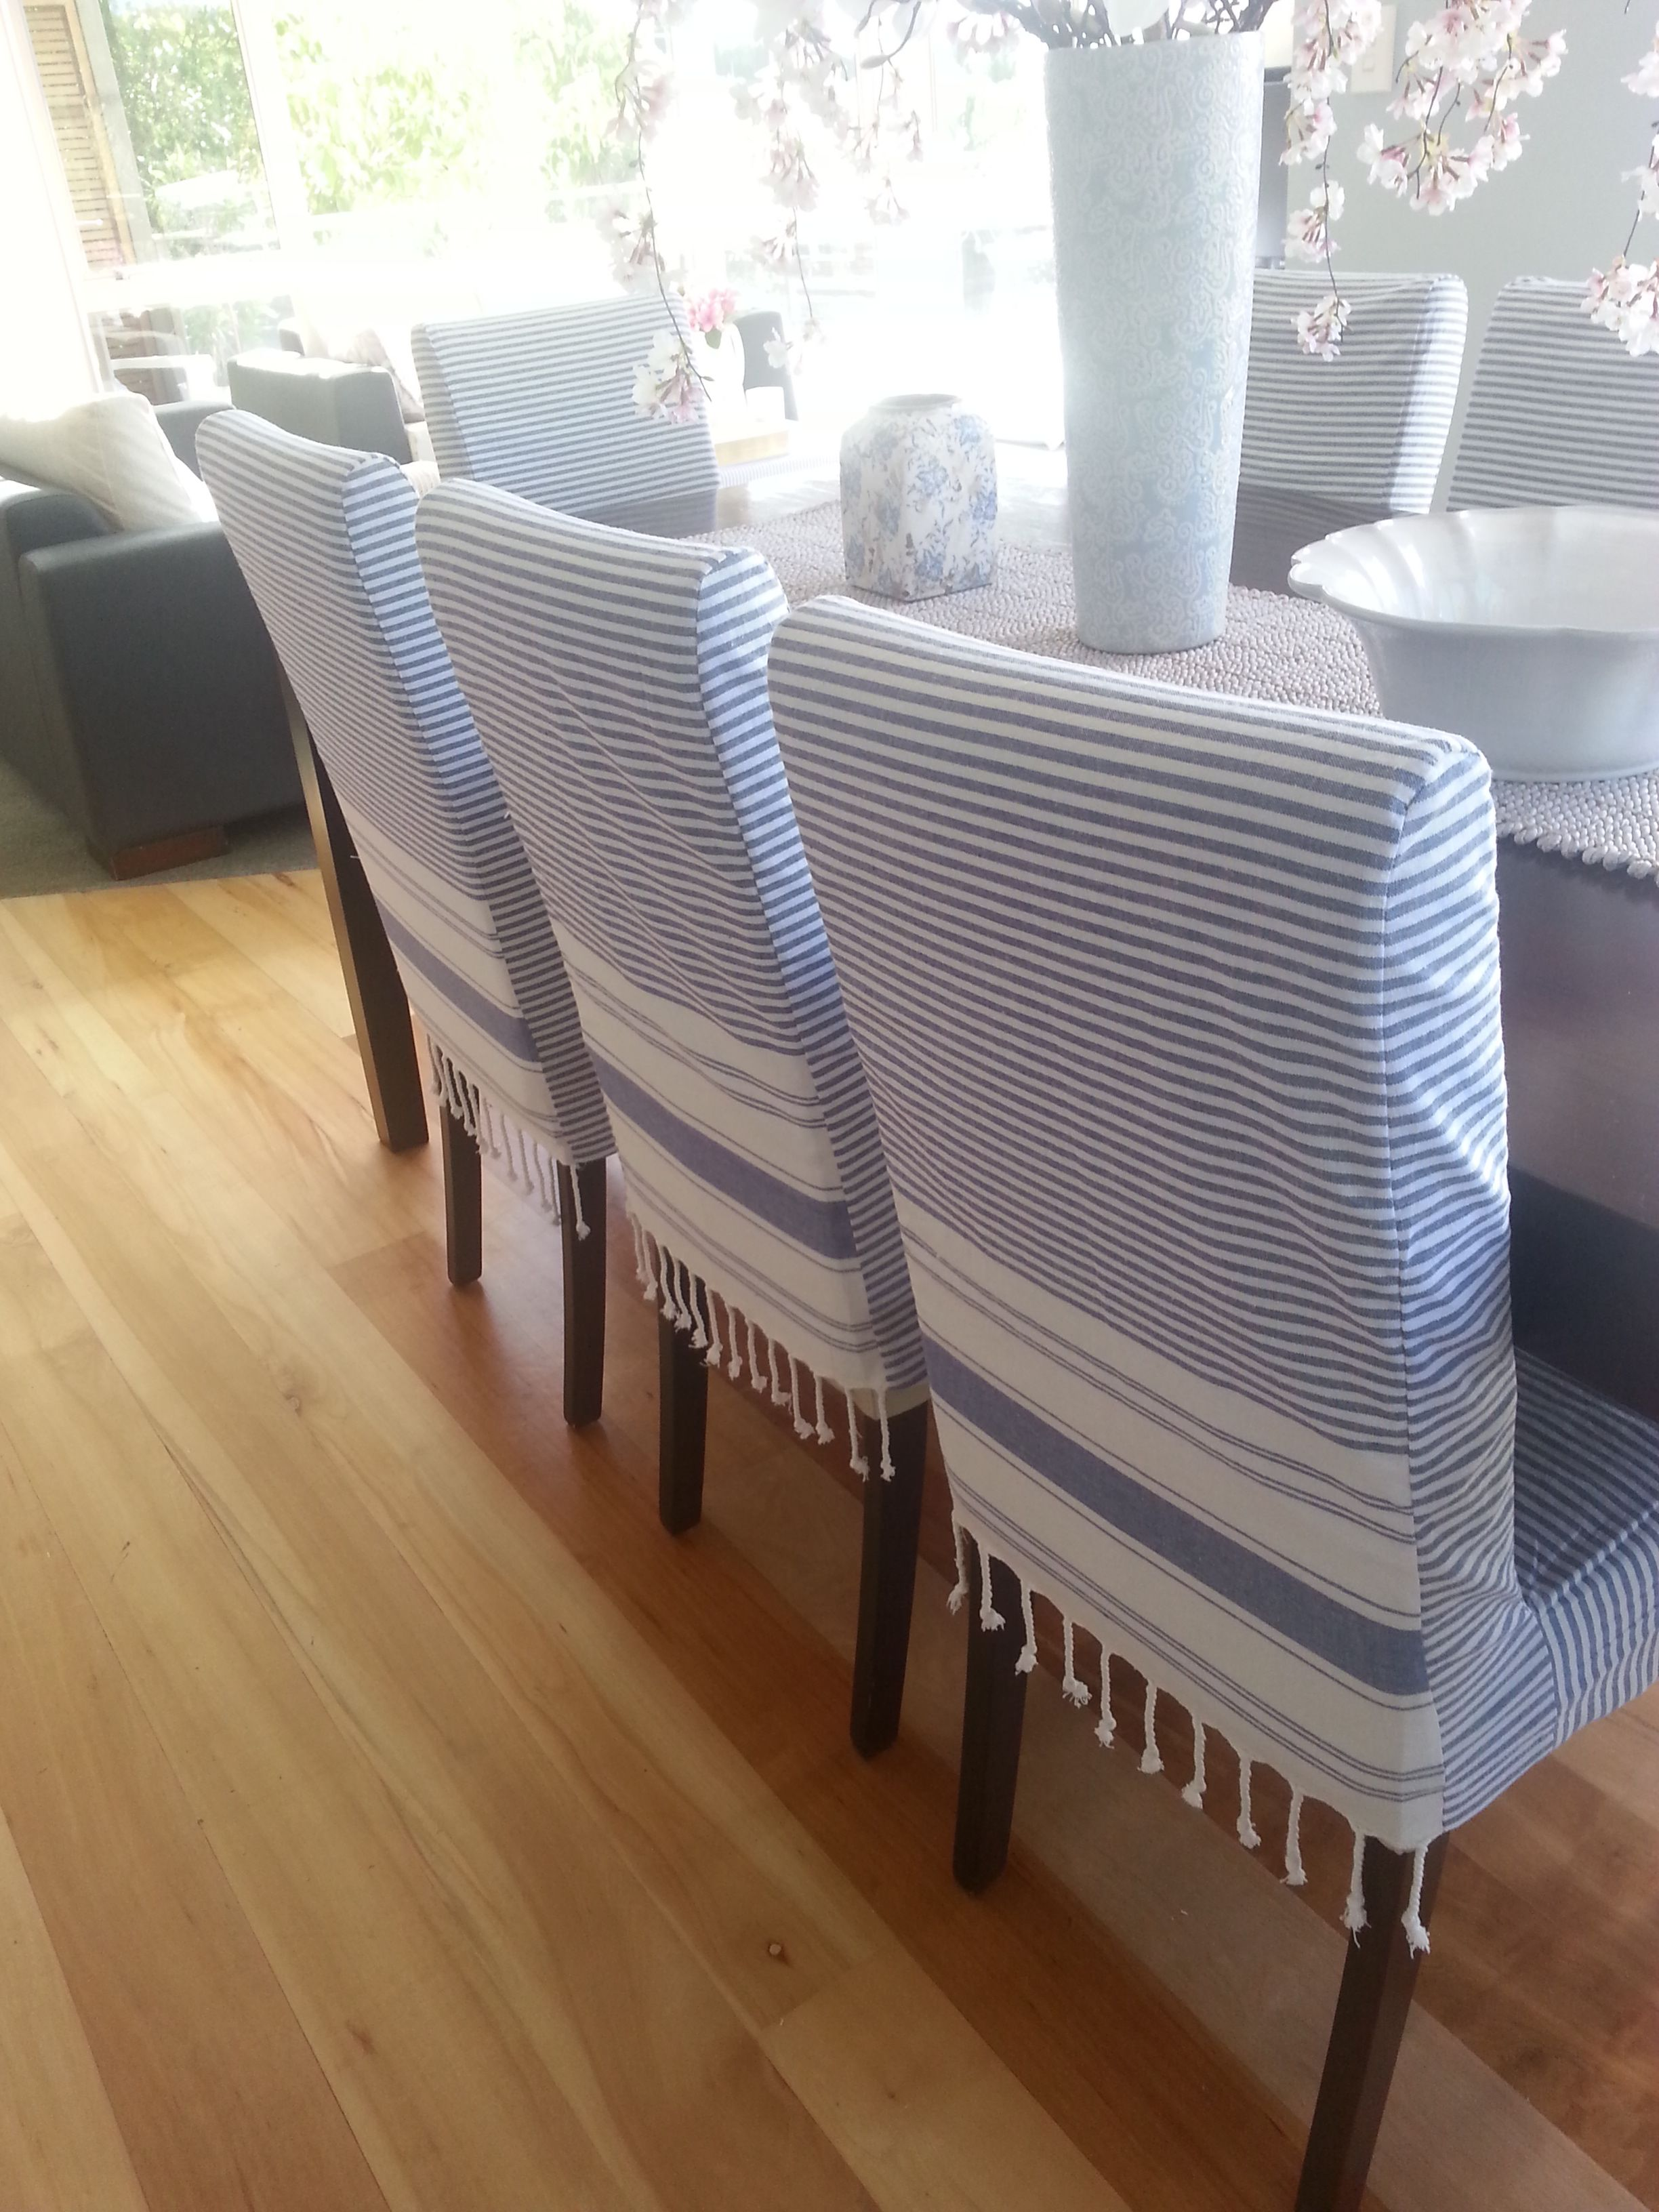 Dining Chair Covers Dining Chair Covers Slipcovers For Chairs Dinning Room Chairs